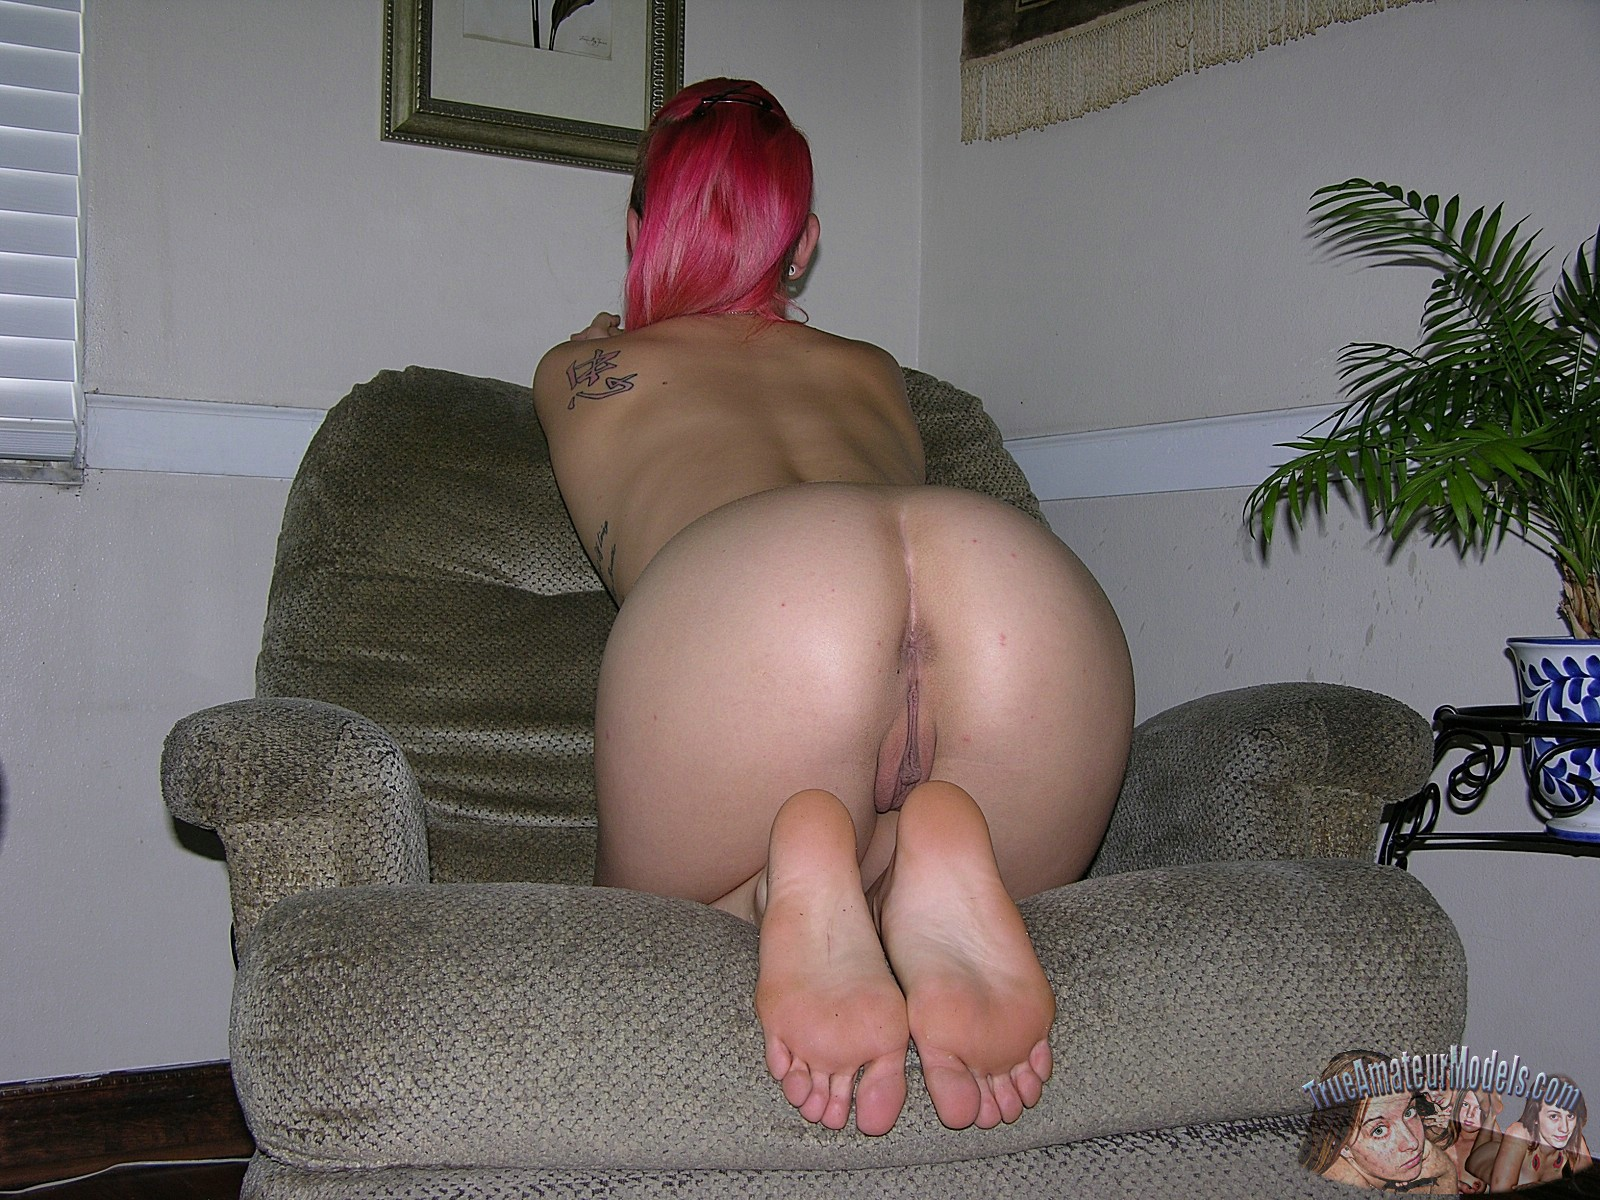 Chubby Teen Fingers Ass